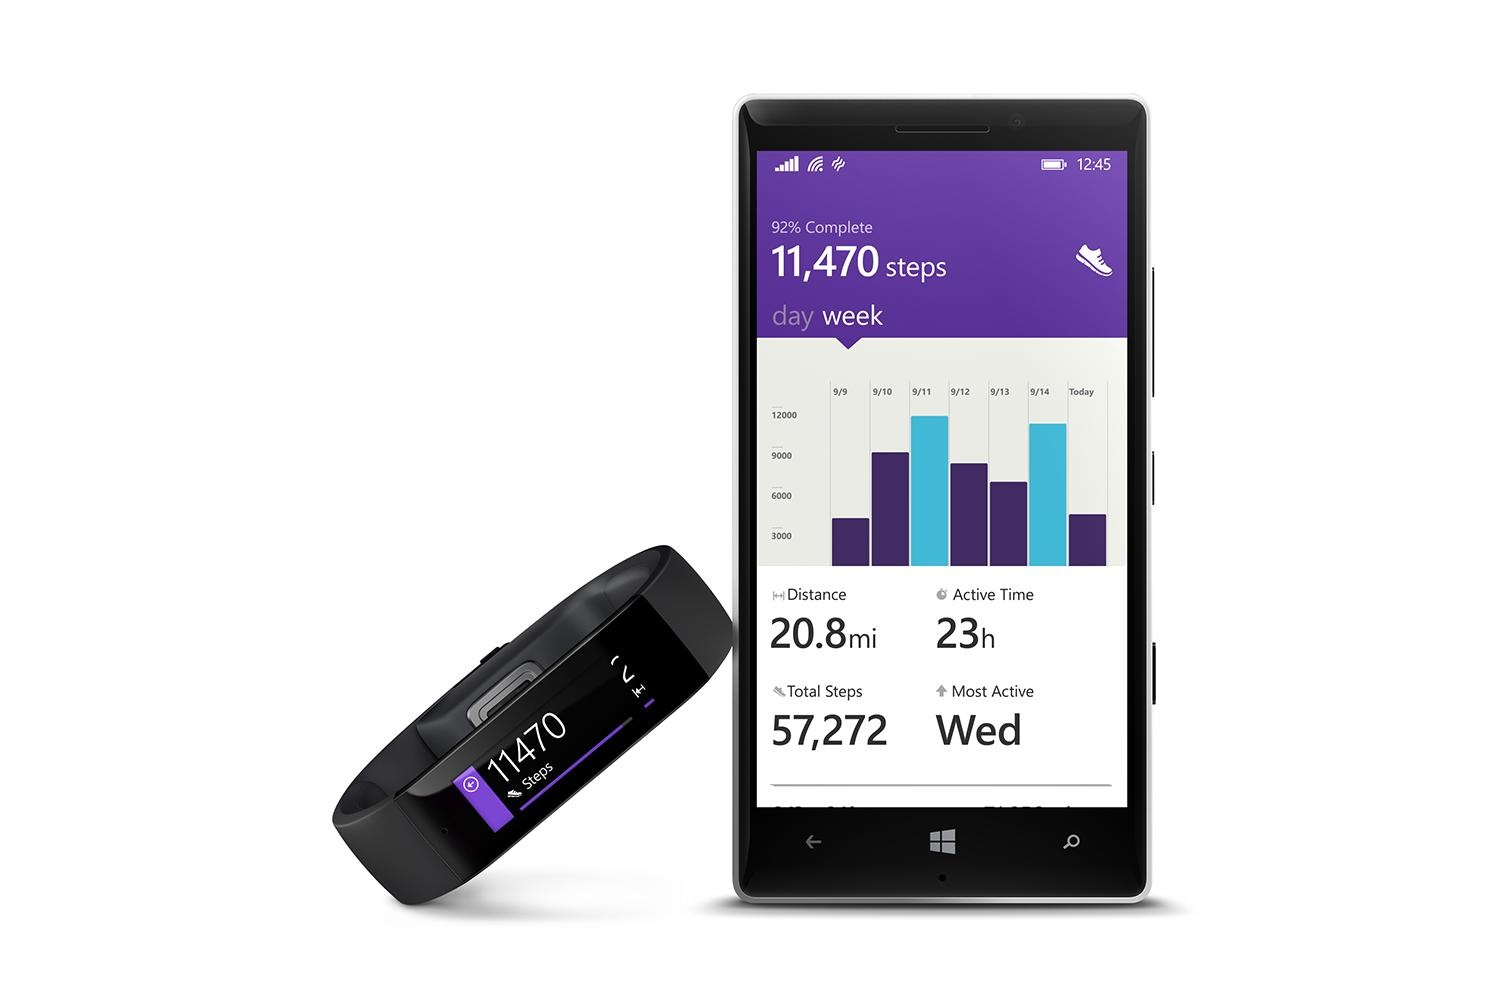 microsoft-band_phone_weeklystepsui-1500x1000